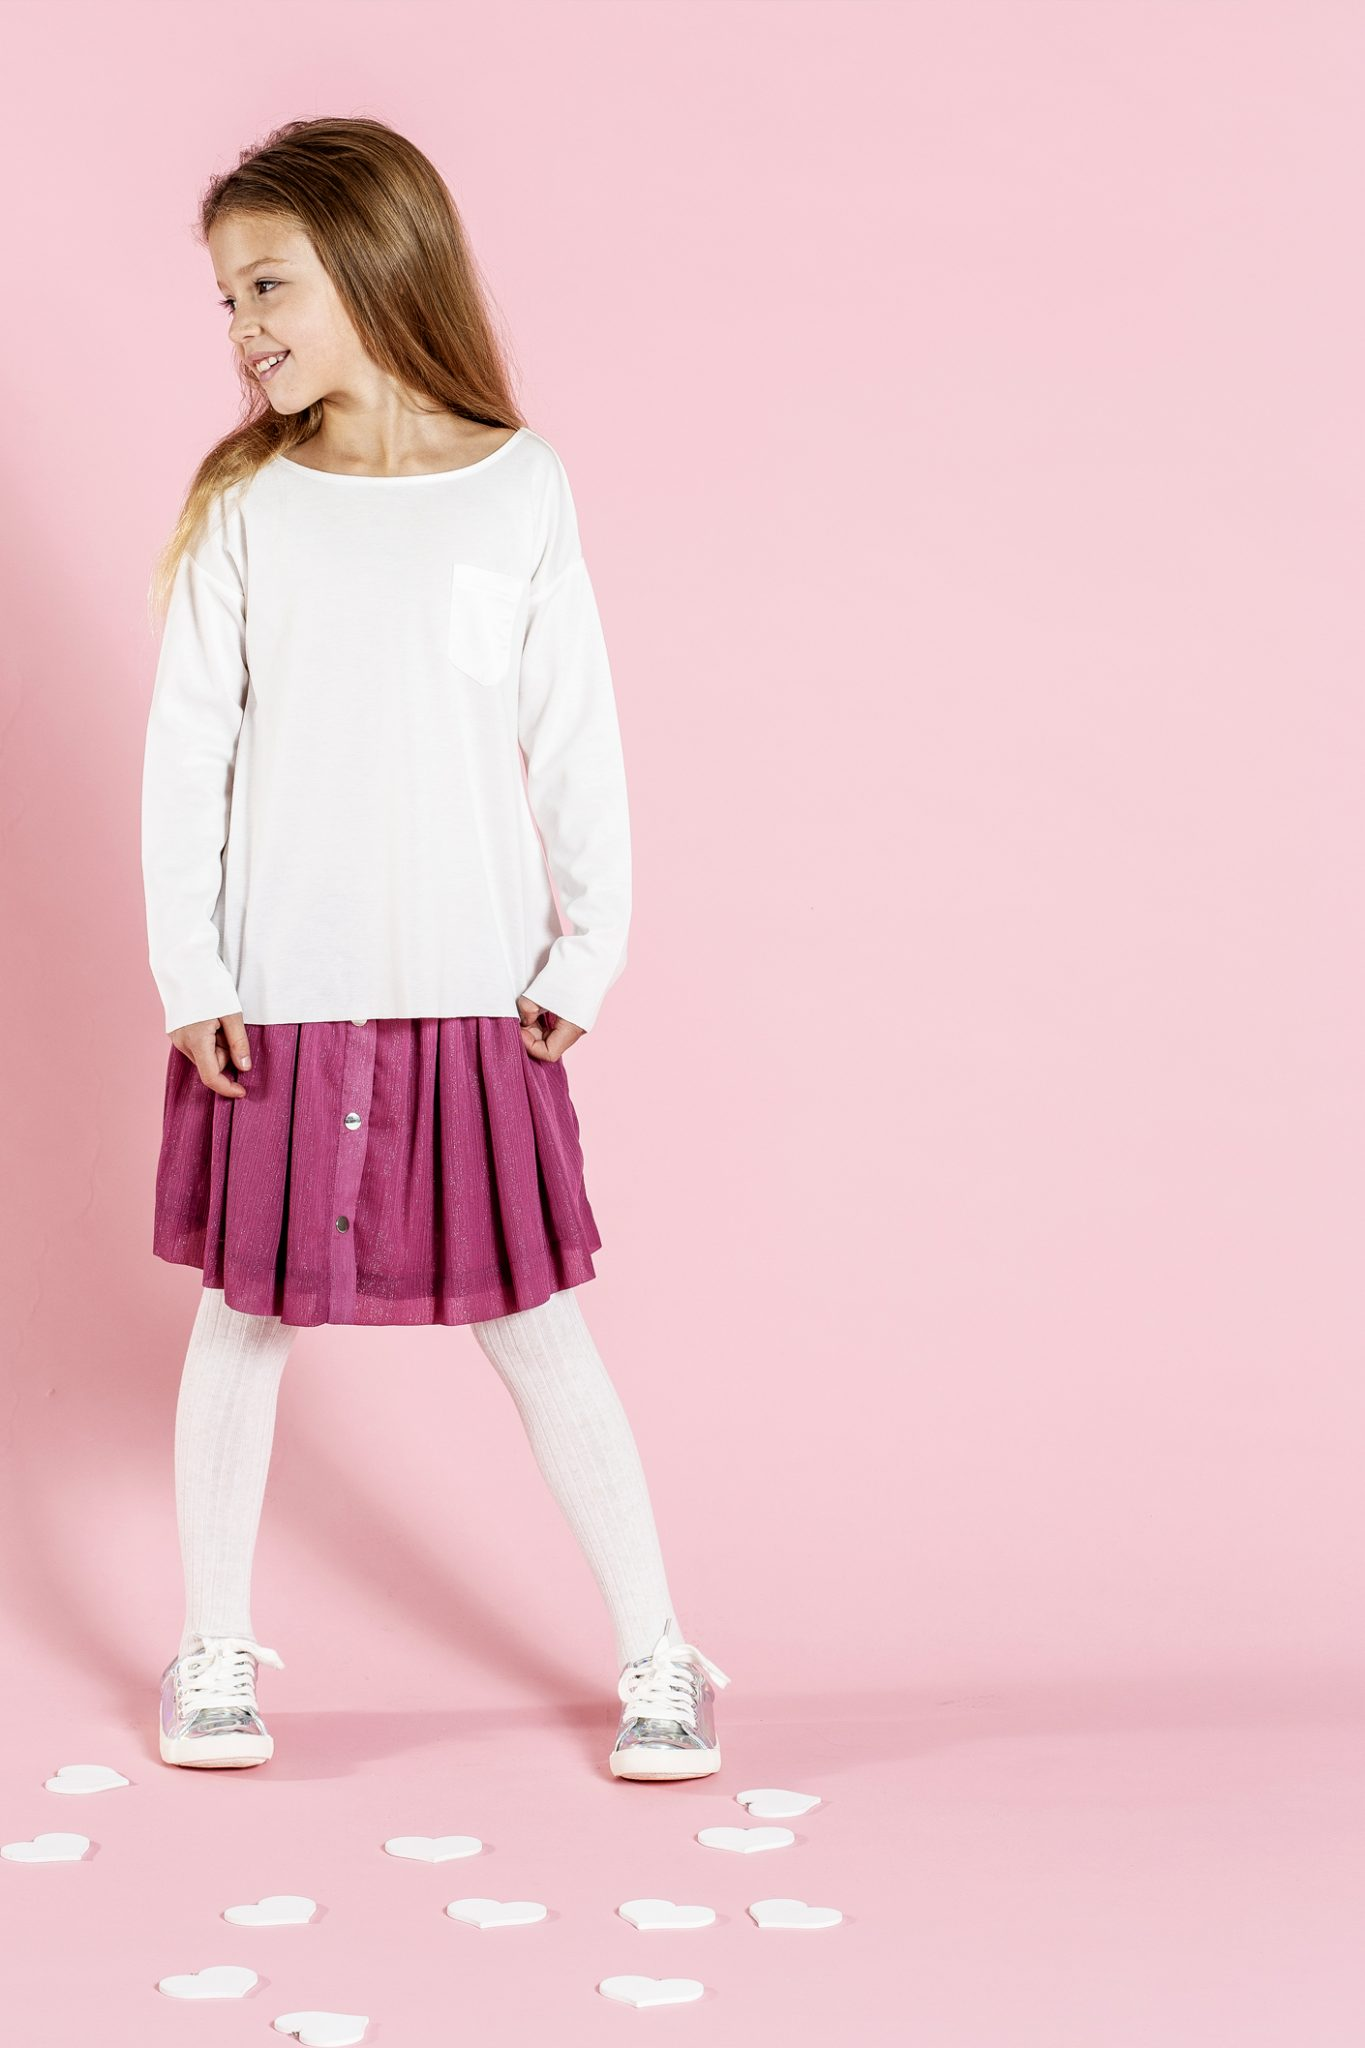 childrenswear-fashion-and-advertising-photographer-in-manchester